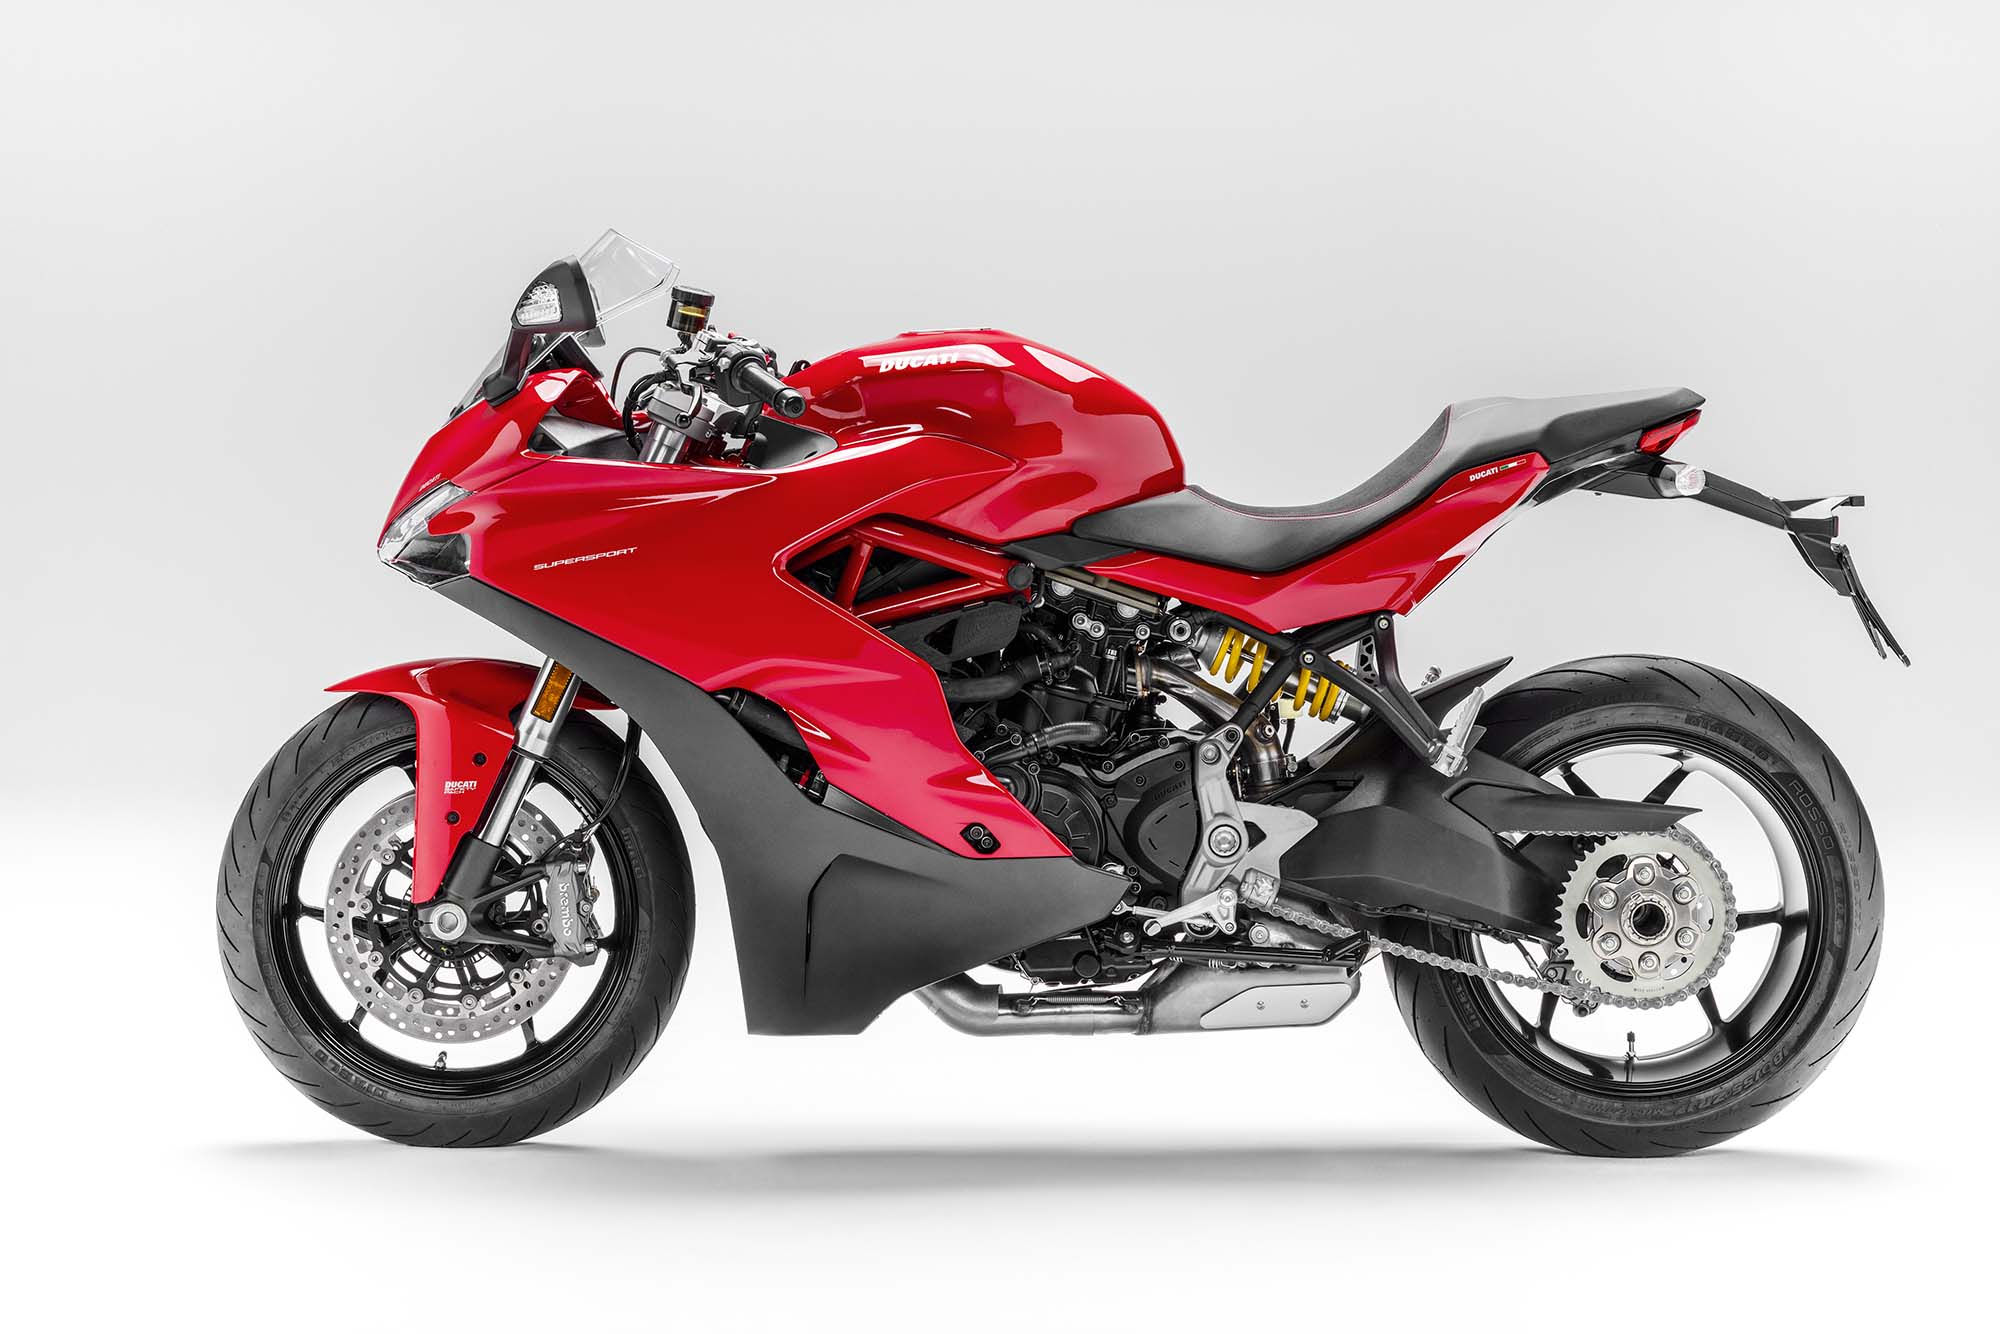 2017 ducati supersport - the sport bike returns - asphalt & rubber